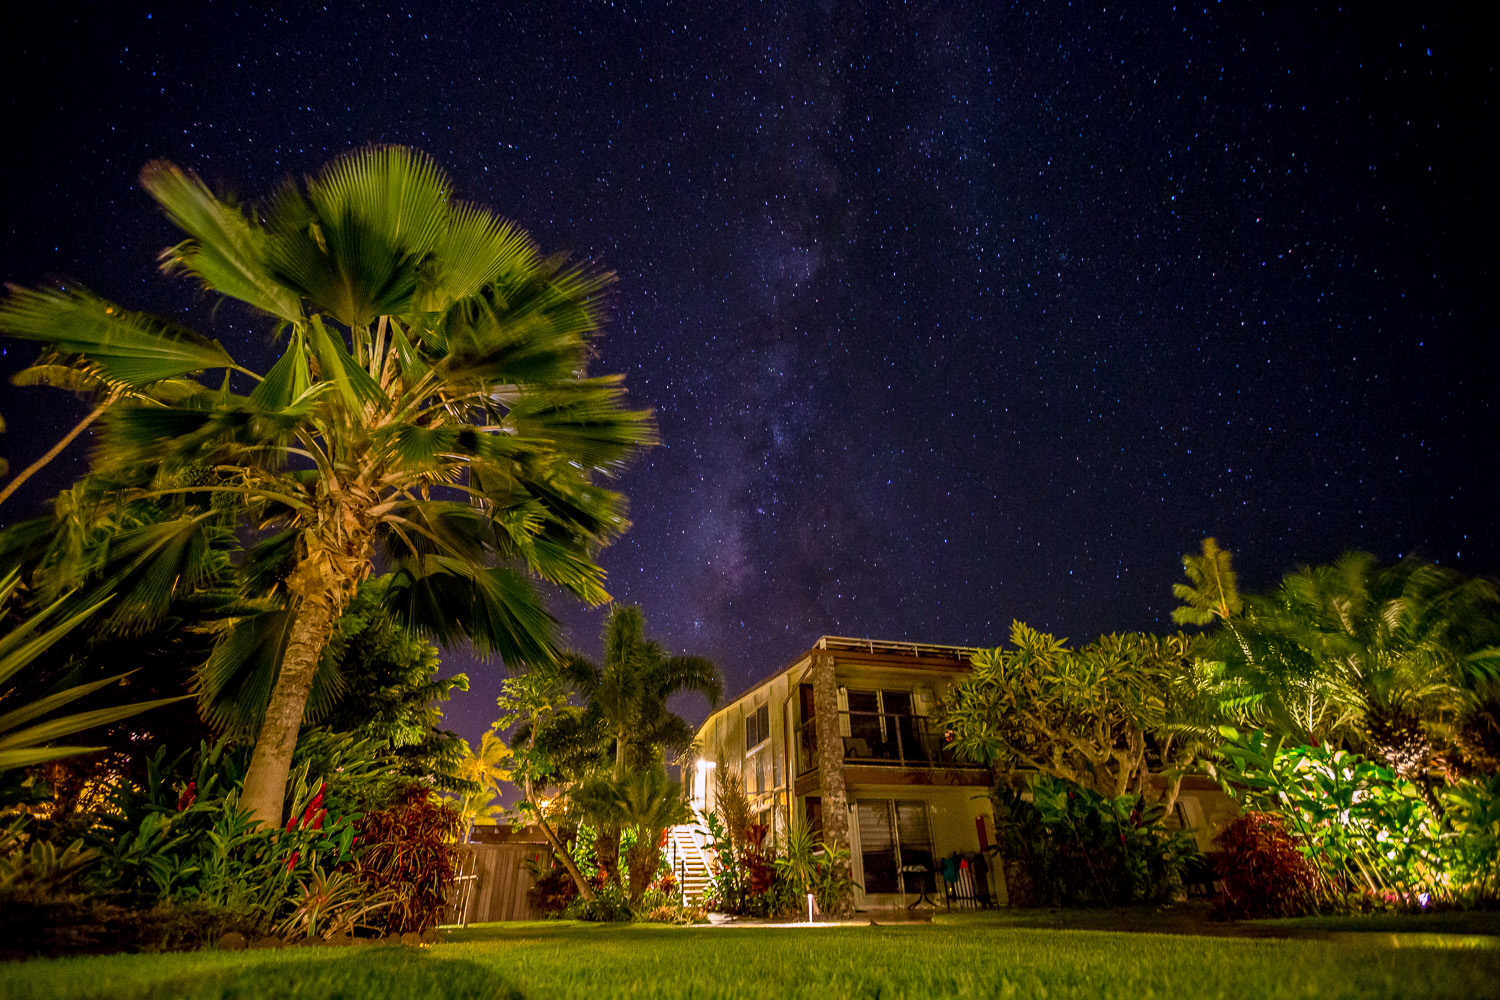 Milky Way galaxyrise from Maui (at the Mauian hotel)